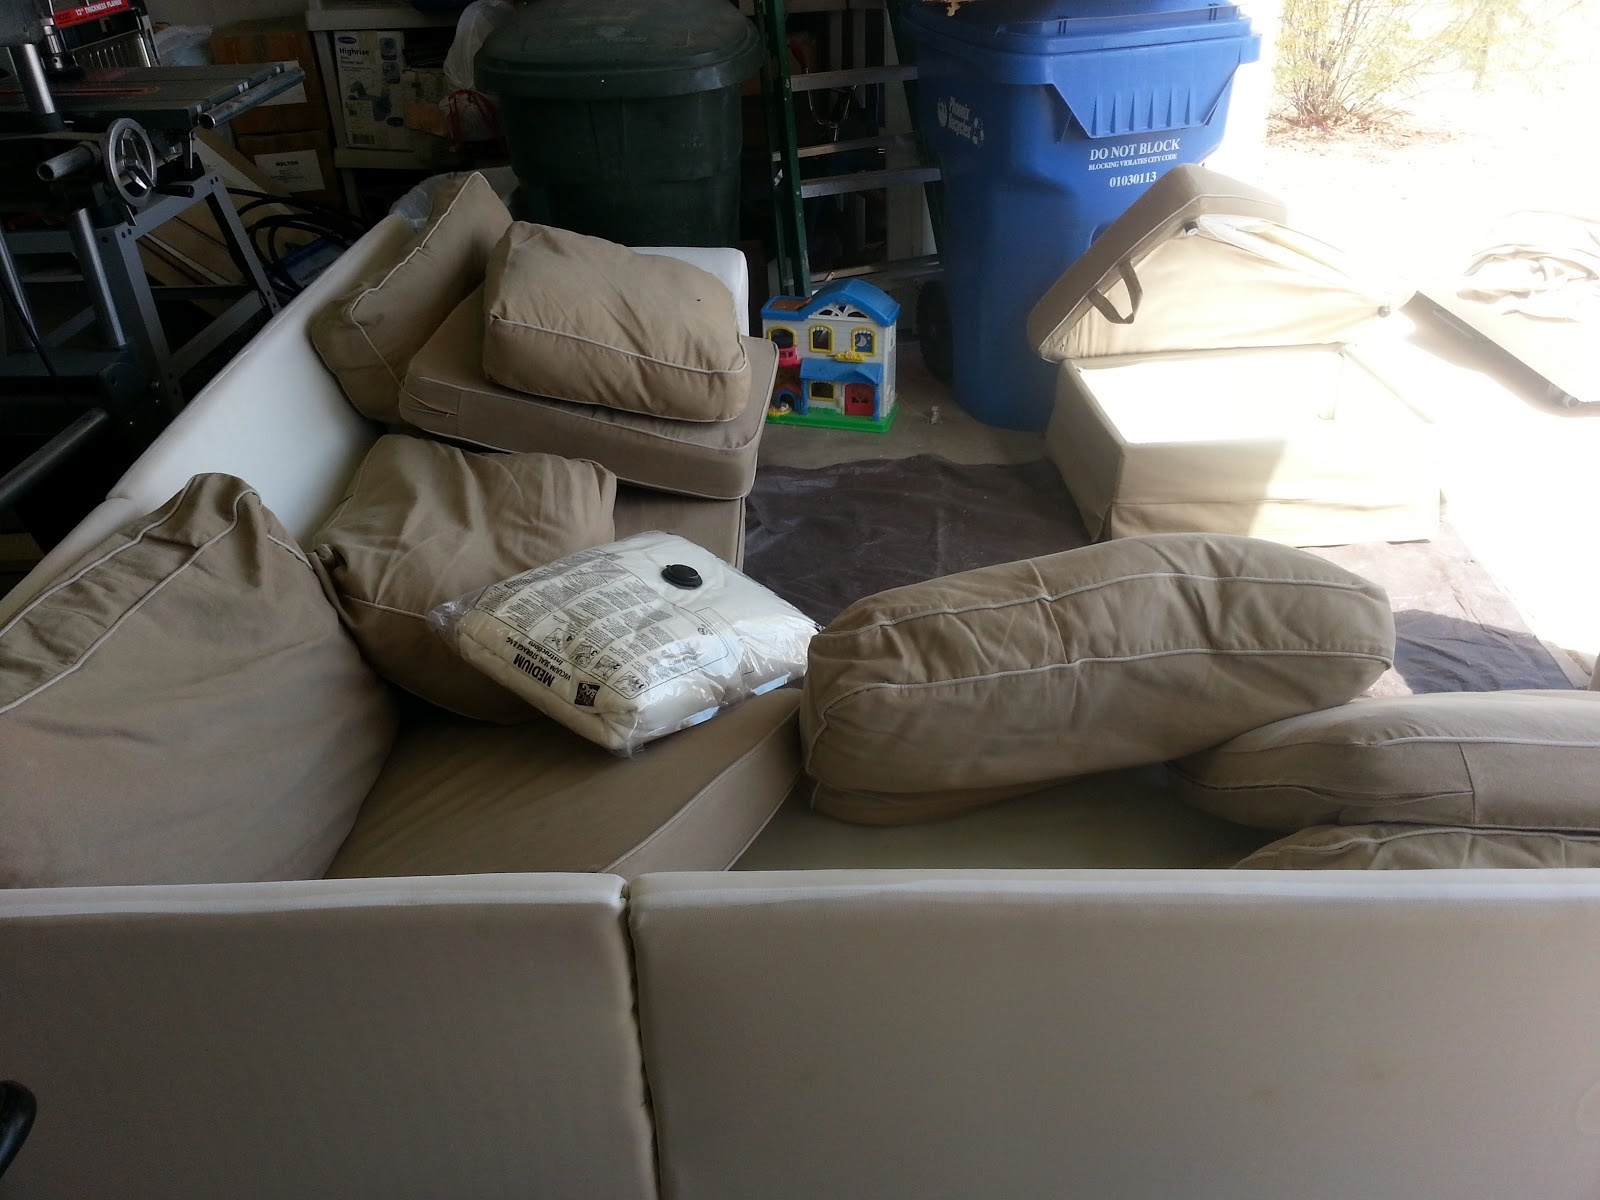 IKEA-couch-for-sale.jpg